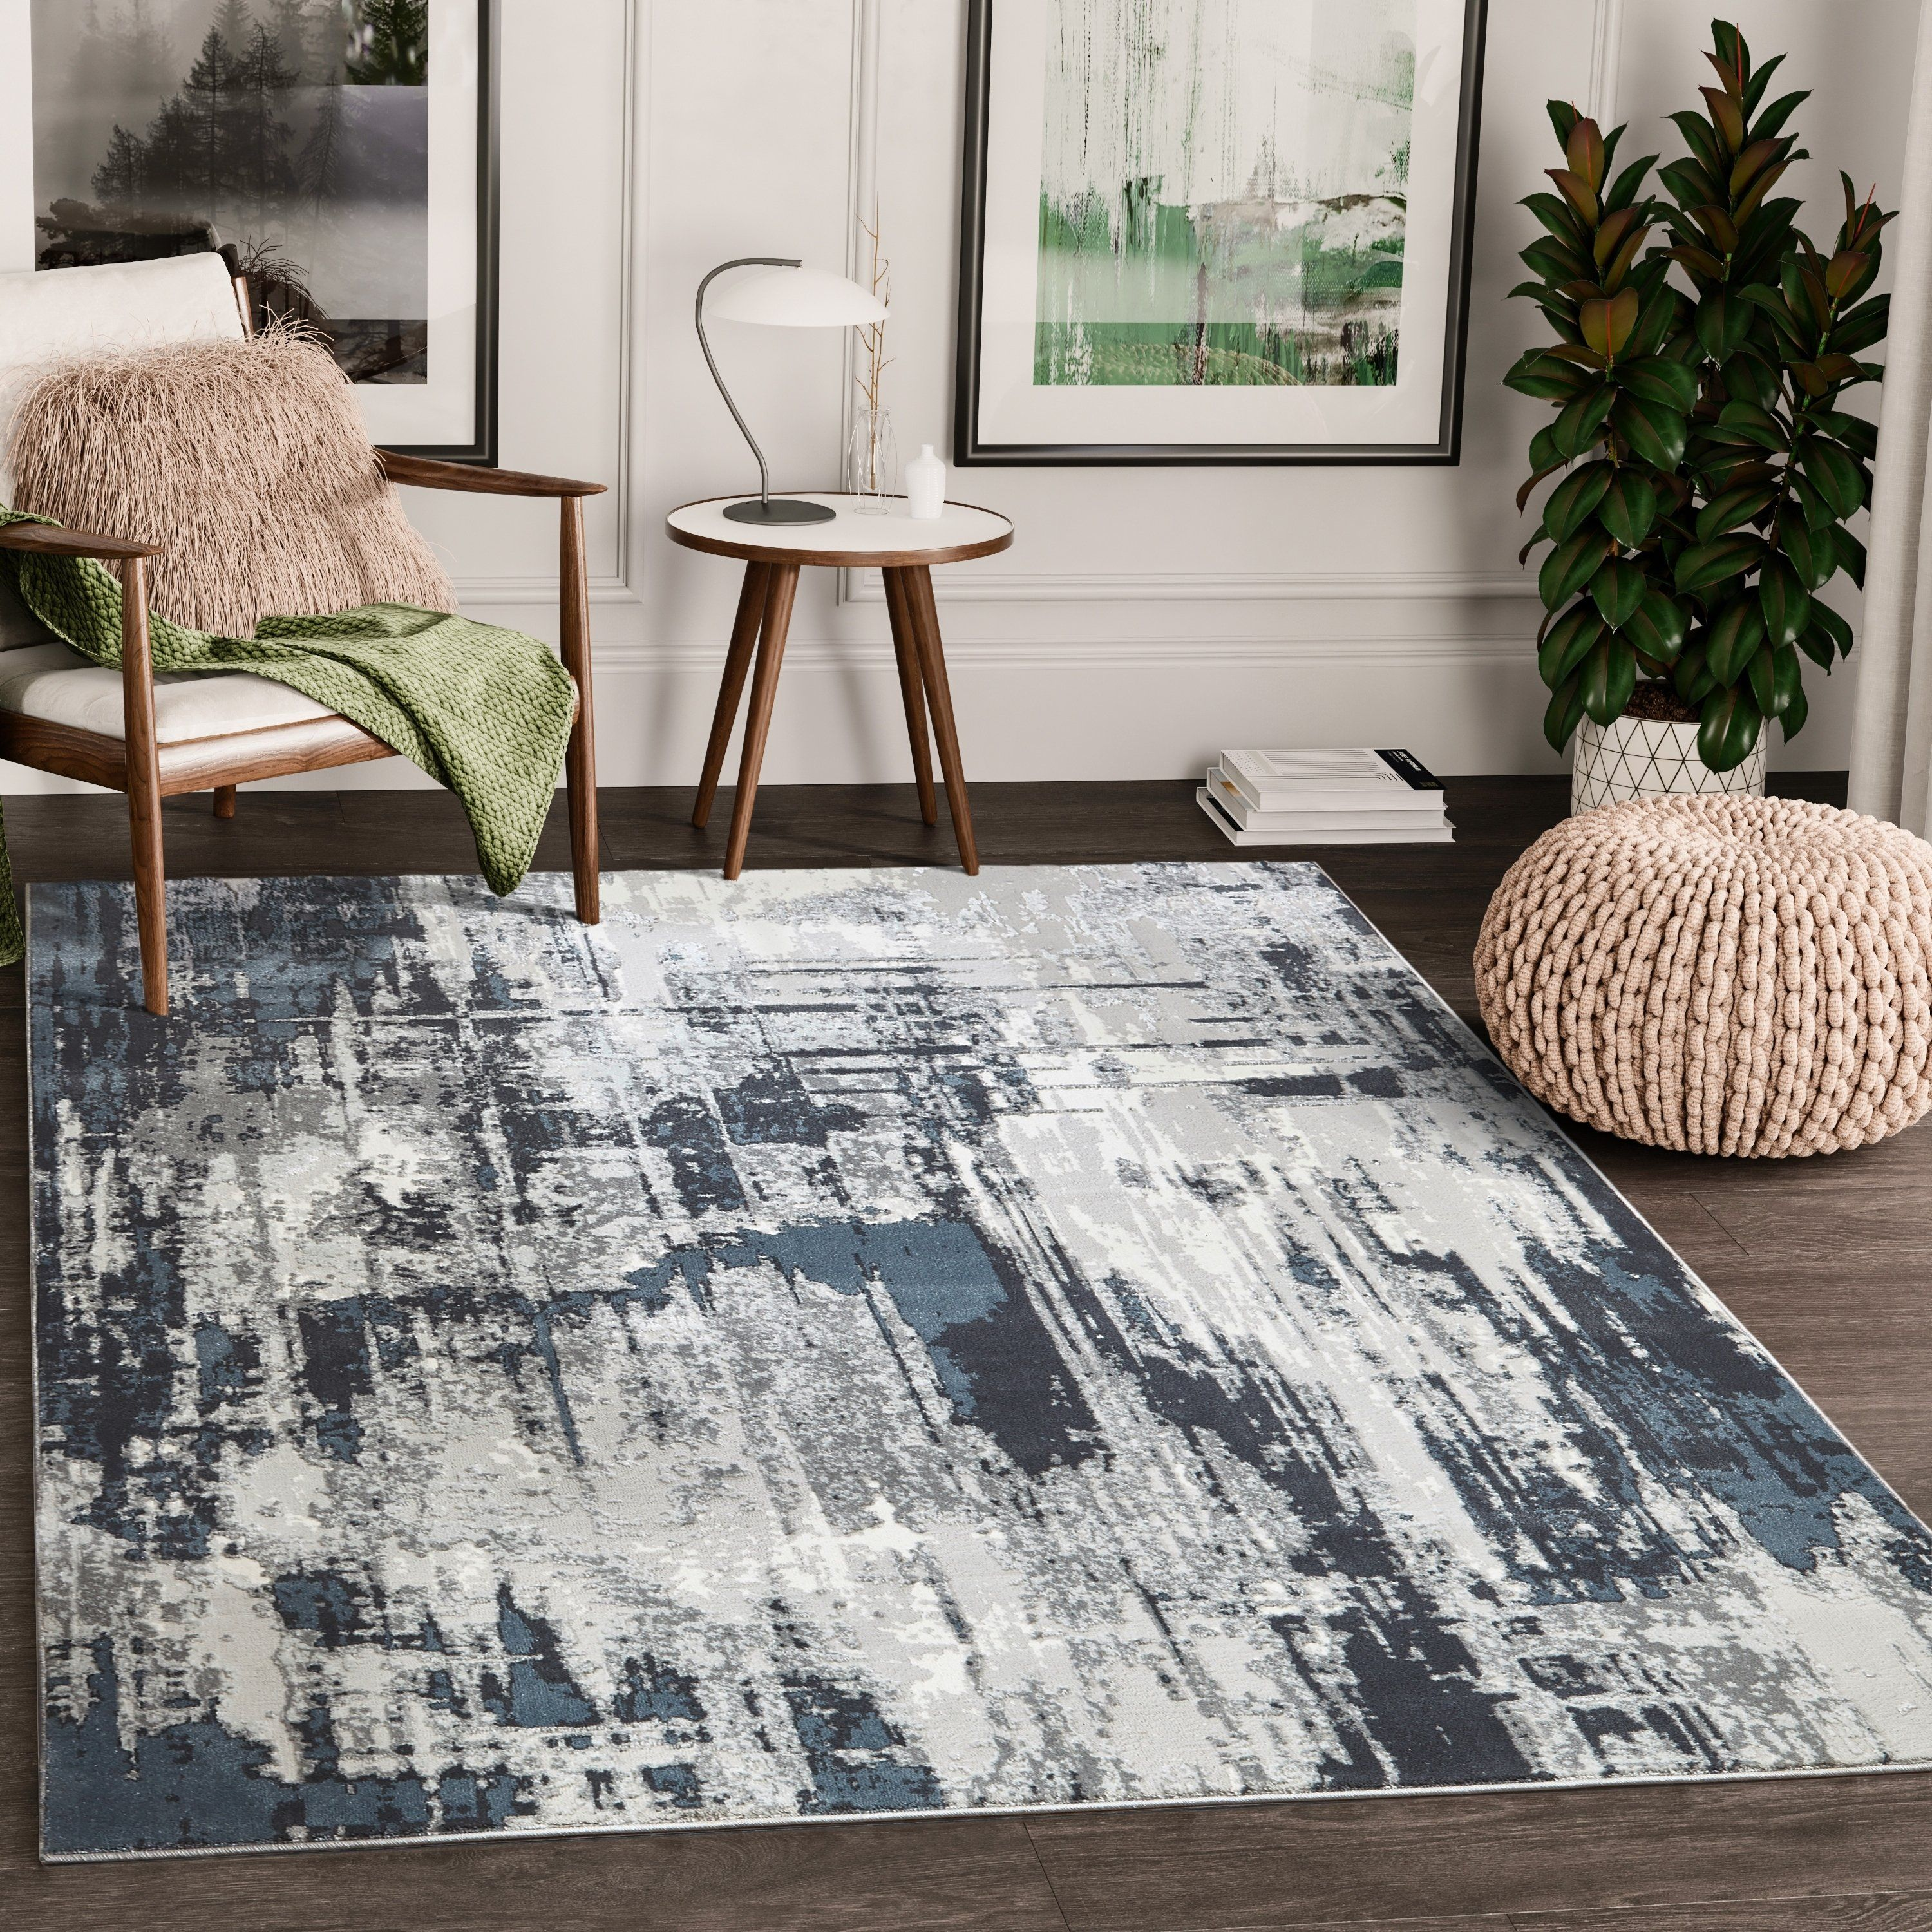 Abstract Grey Area Rug N A 5 X 8 Gray Area Rugs Rustic